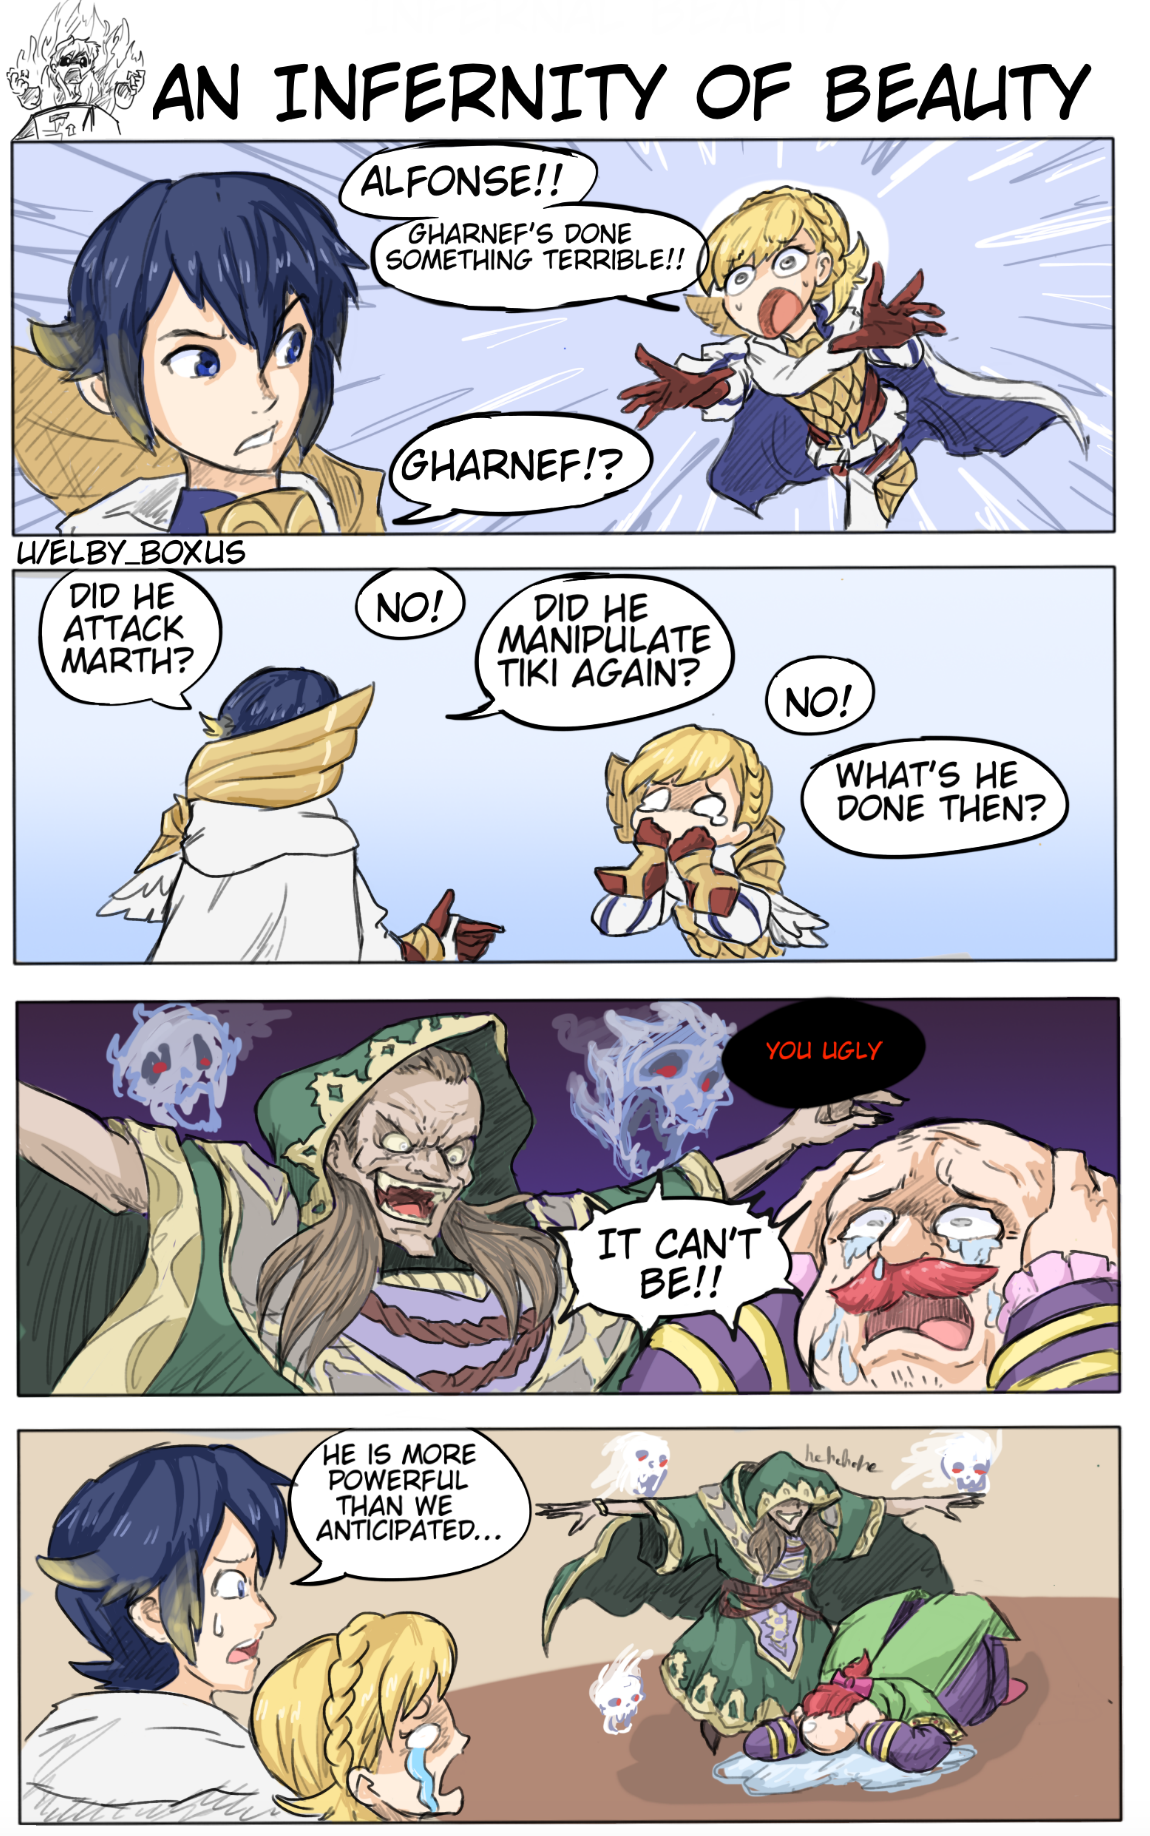 R Fireemblemheroes The Everyday Life Of Beauty 10 In 2020 Fire Emblem Heroes Fire Emblem Fire Emblem Fates Appears in fire emblem heroes.and elsewhere. r fireemblemheroes the everyday life